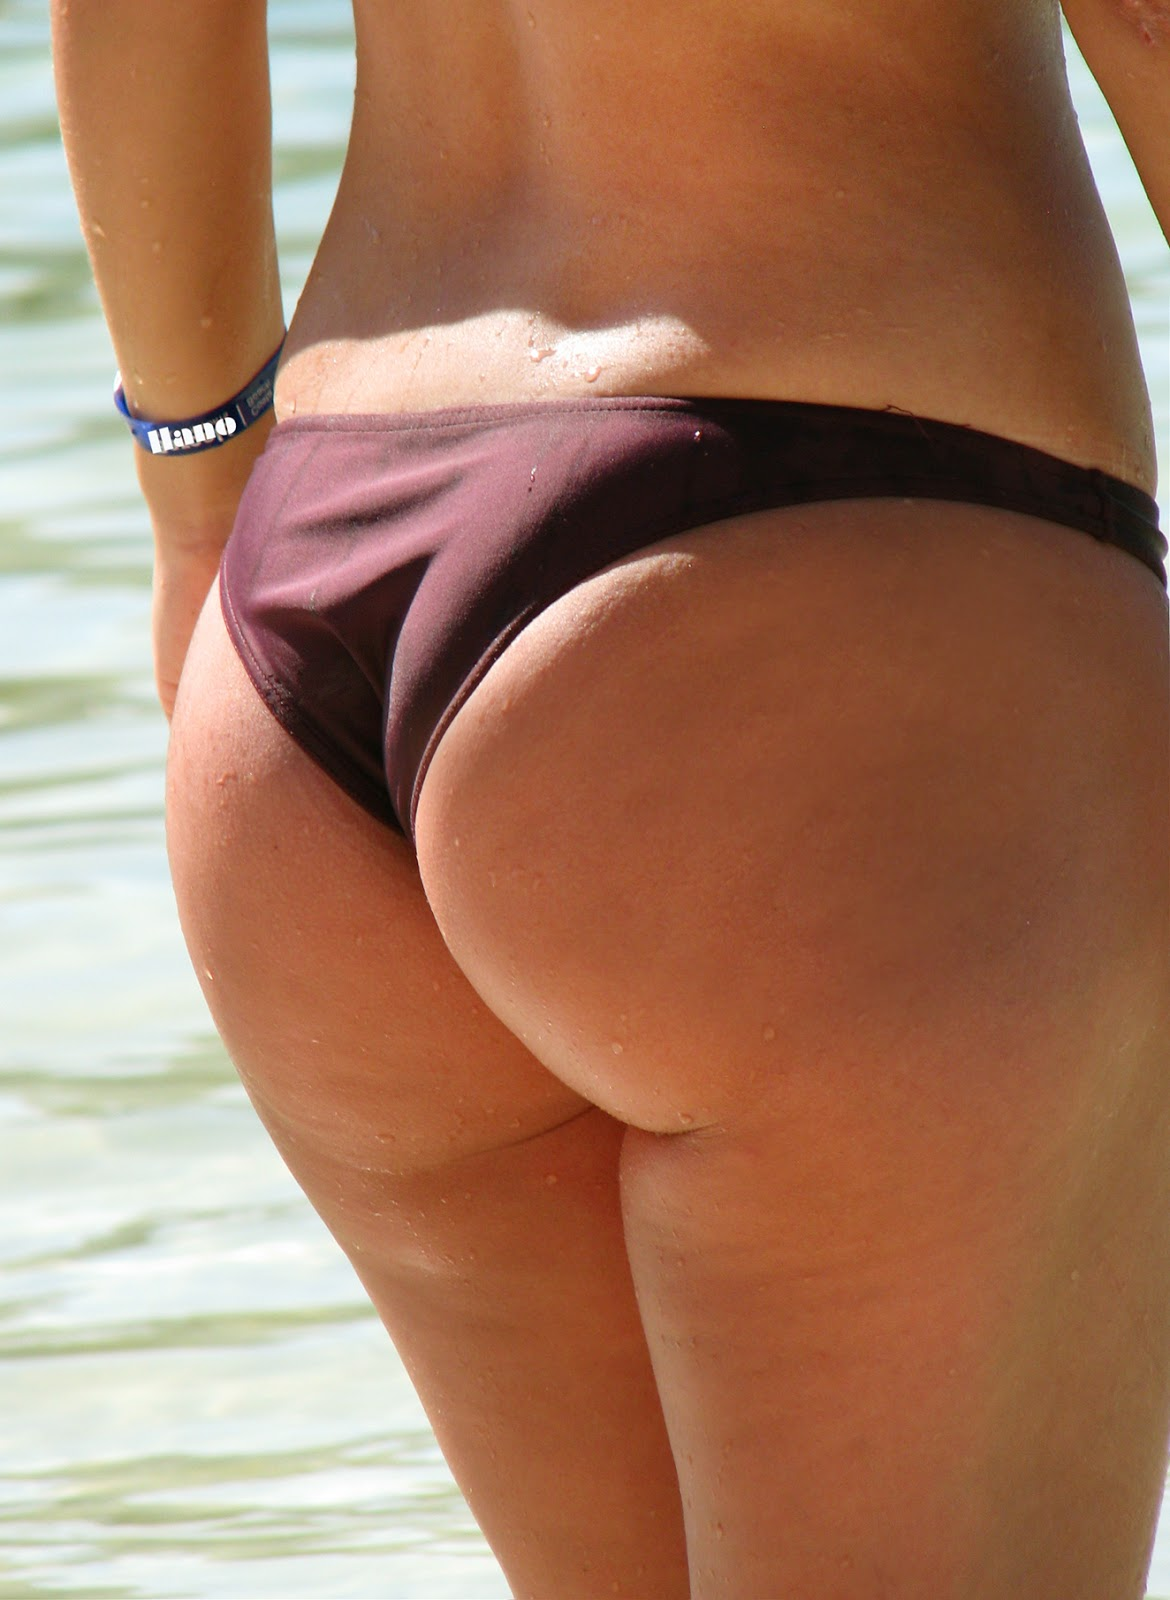 juicy pawg